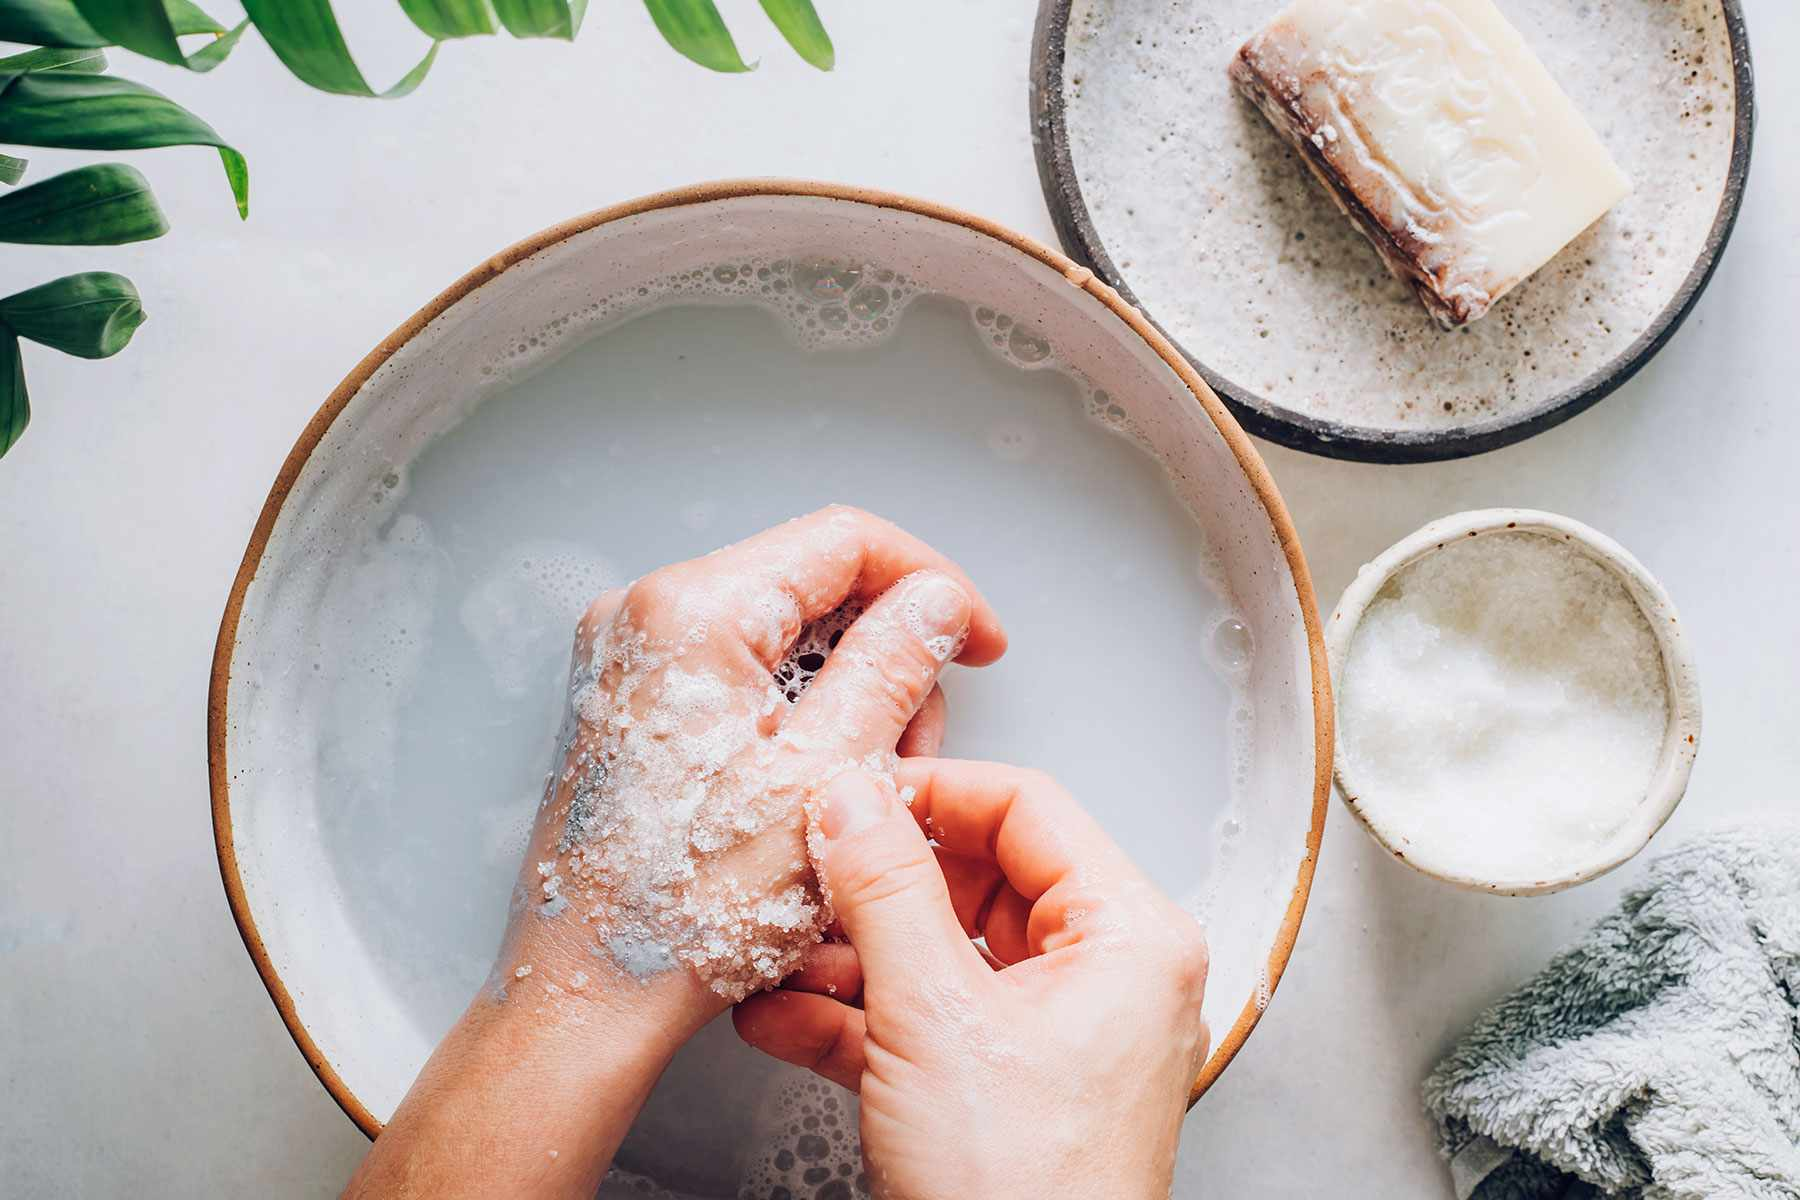 Table salt added to soap and water mixture in bowl to rub paint off hand